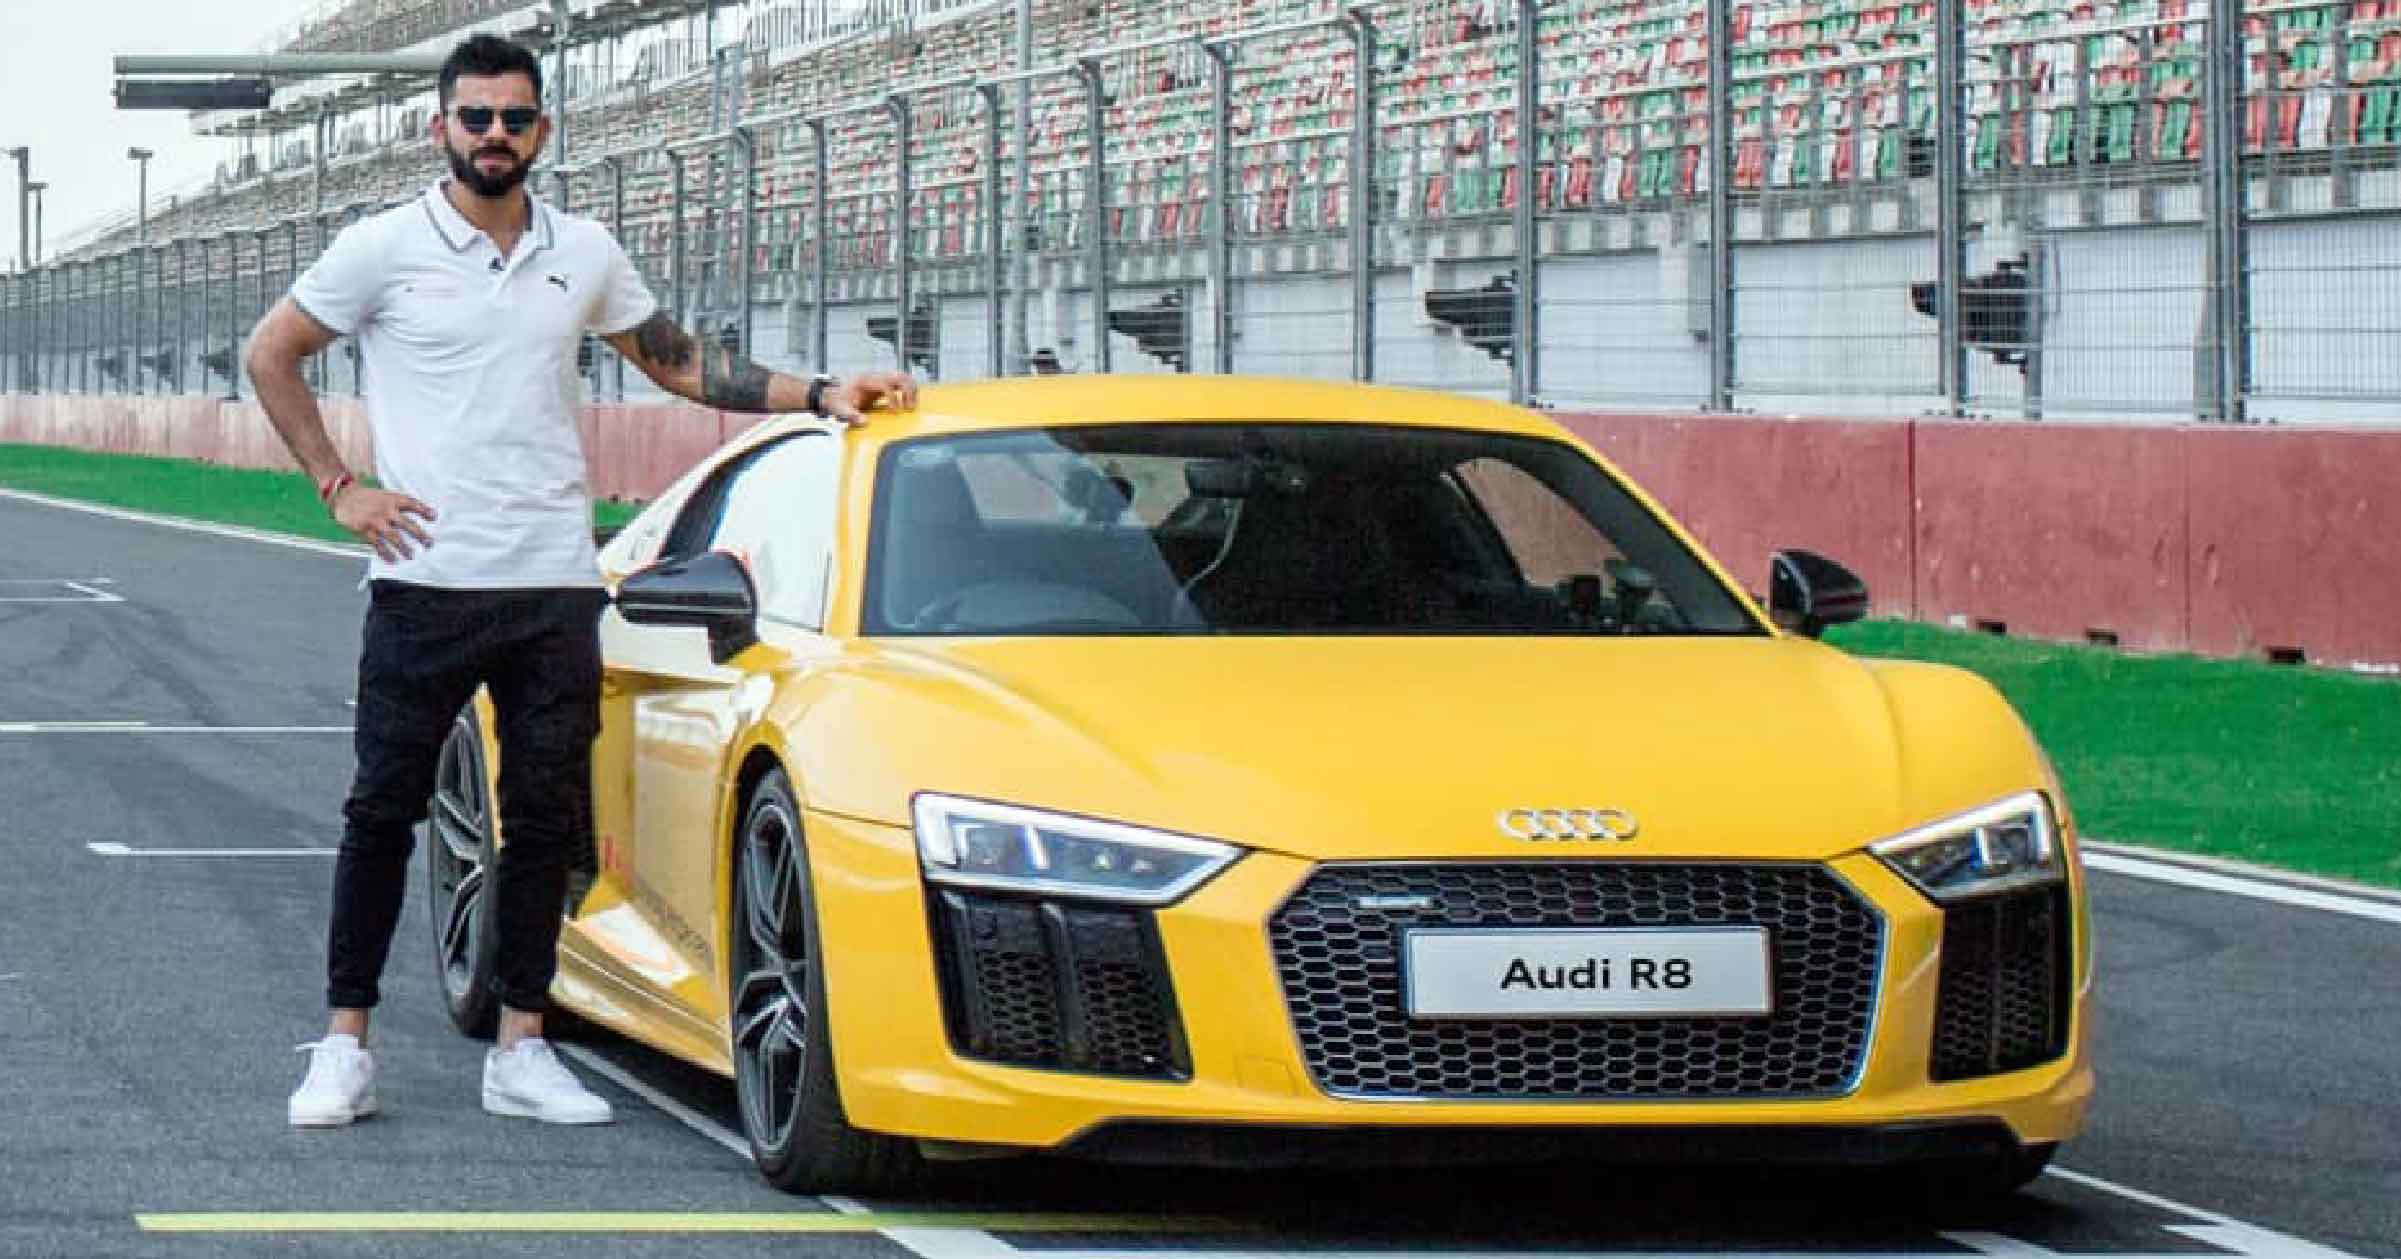 Virat Kohli His Cars The All Rounder Car Collection